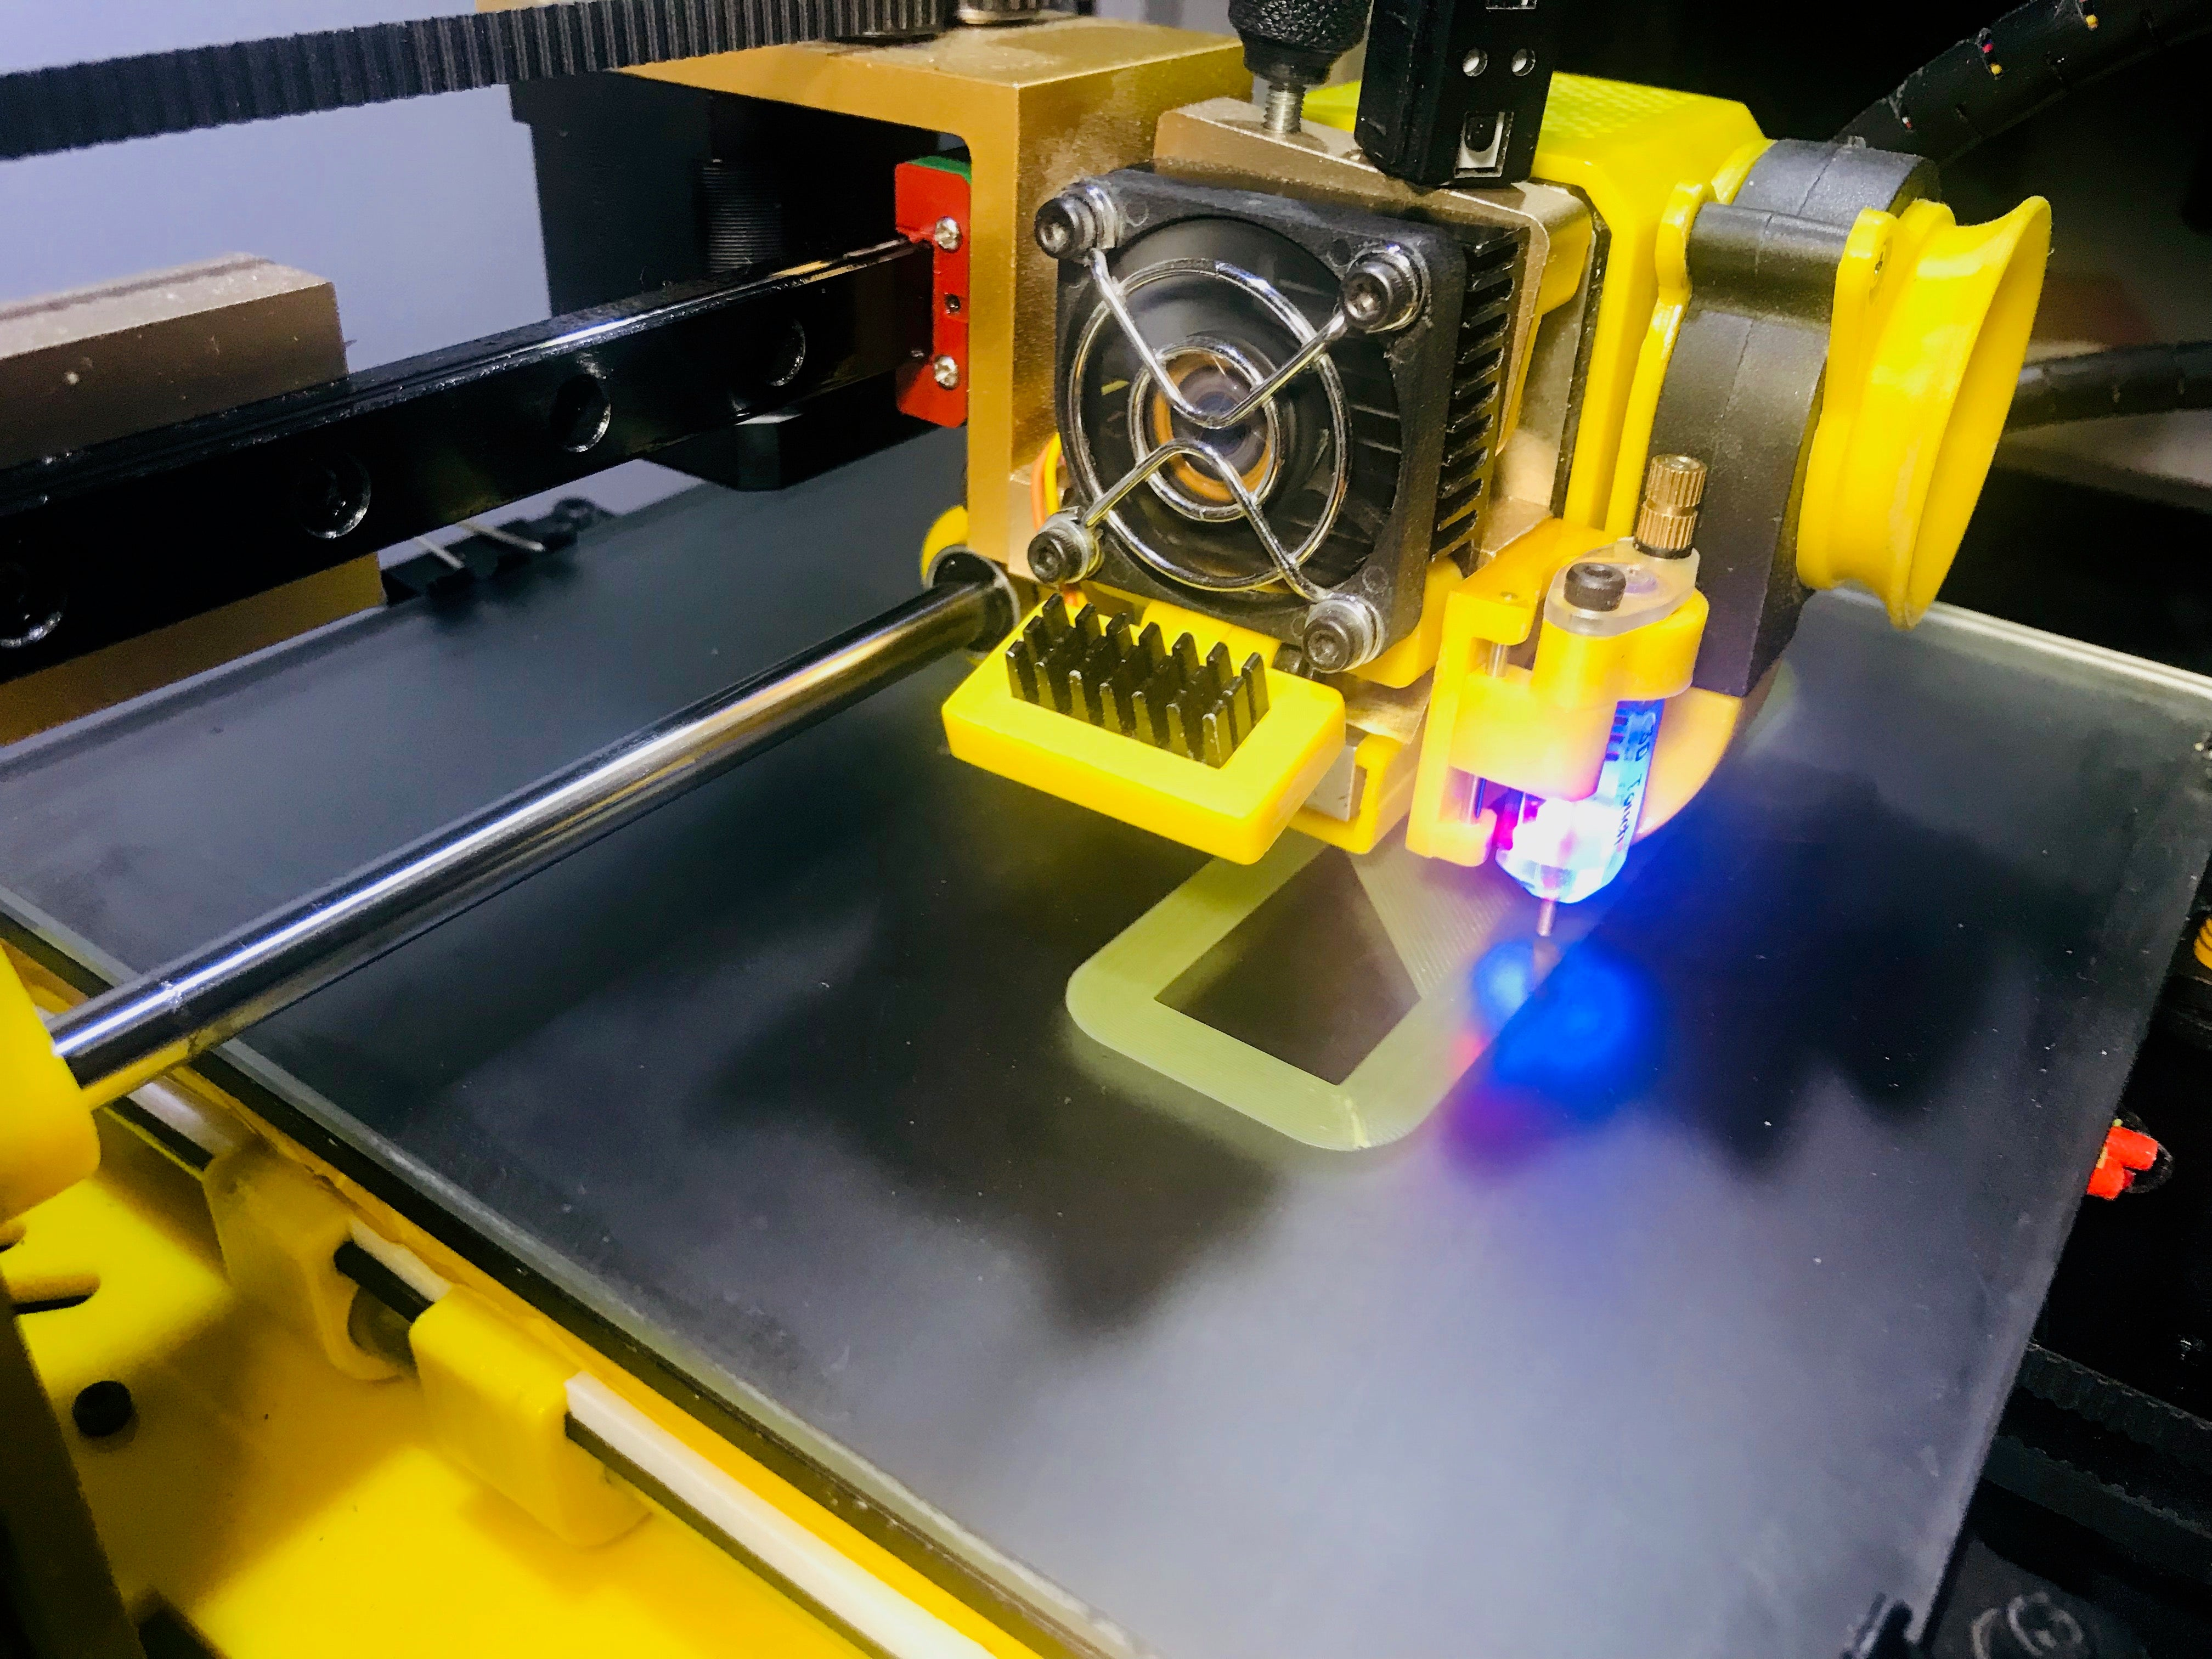 IMG_6815.jpeg Download free STL file Linear X-Axis Stabilizer for Prusa i4 • 3D printing object, perinski